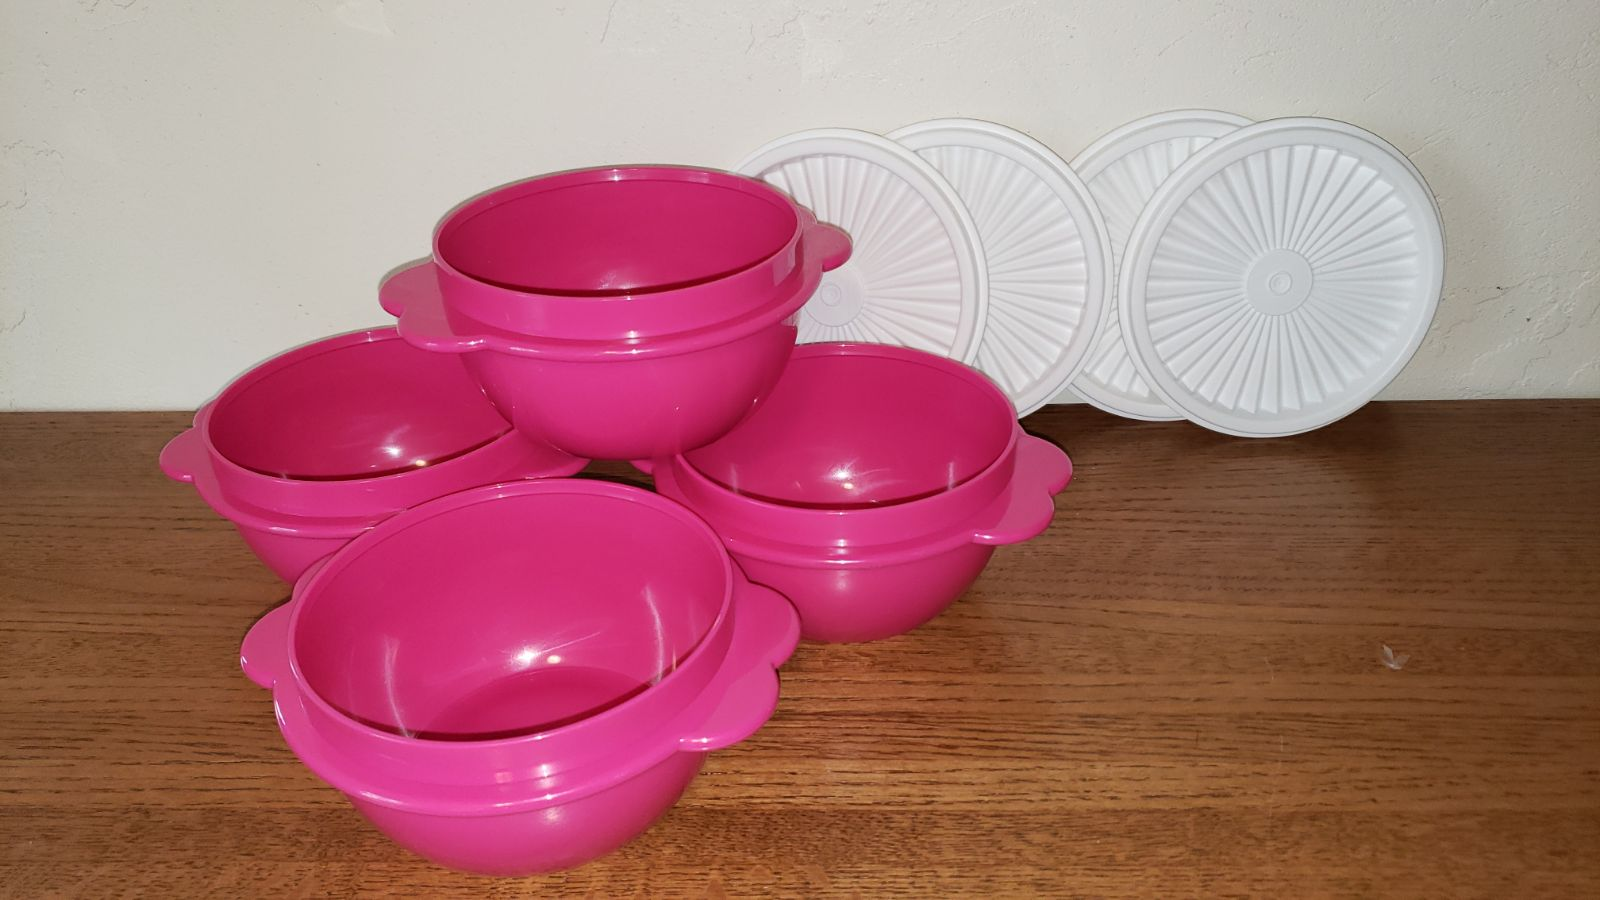 4 New Tupperware Bowls with Seals